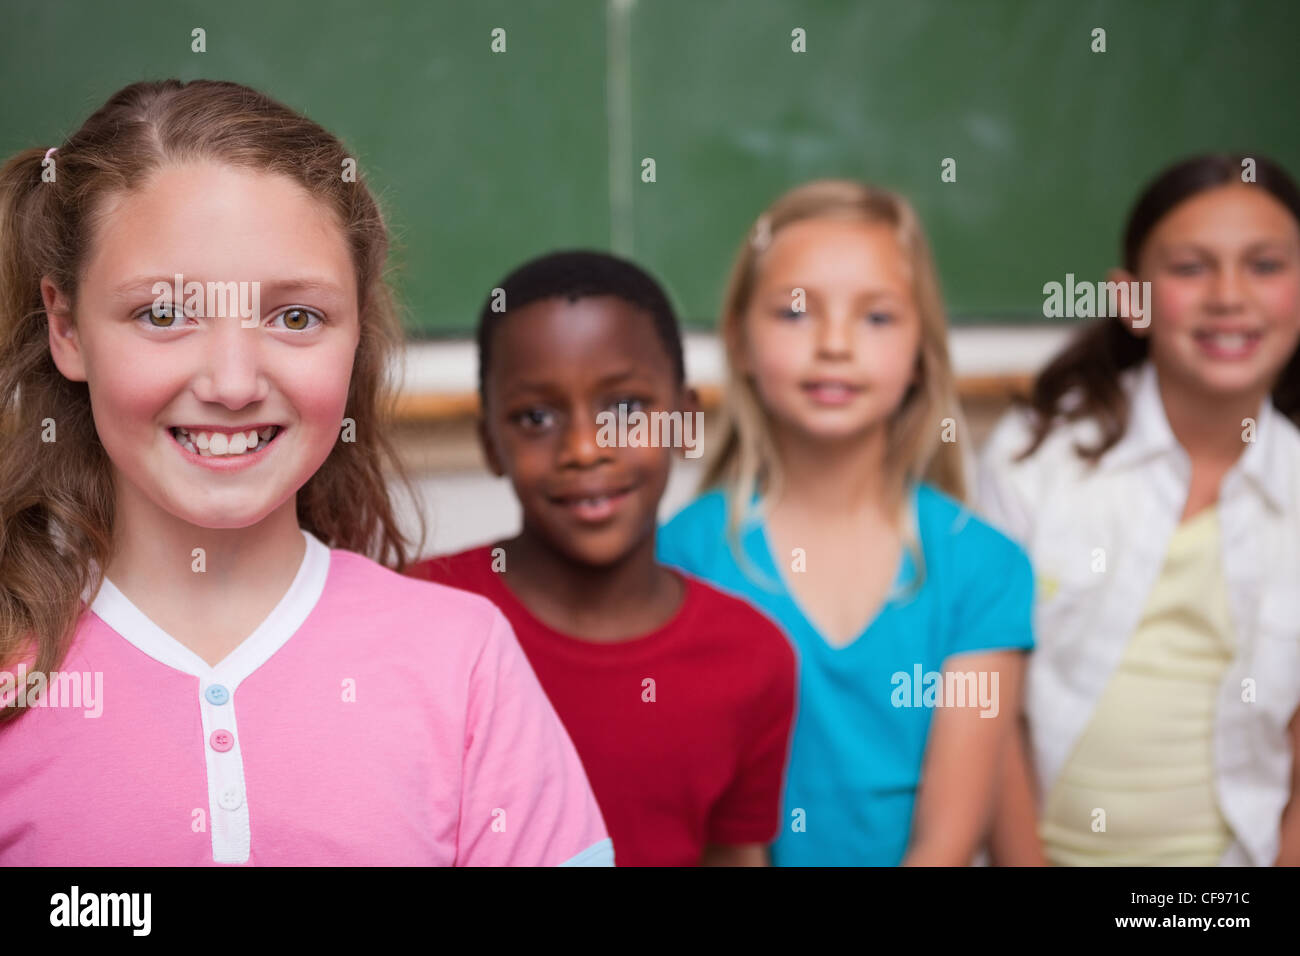 Classmates posing in a row - Stock Image